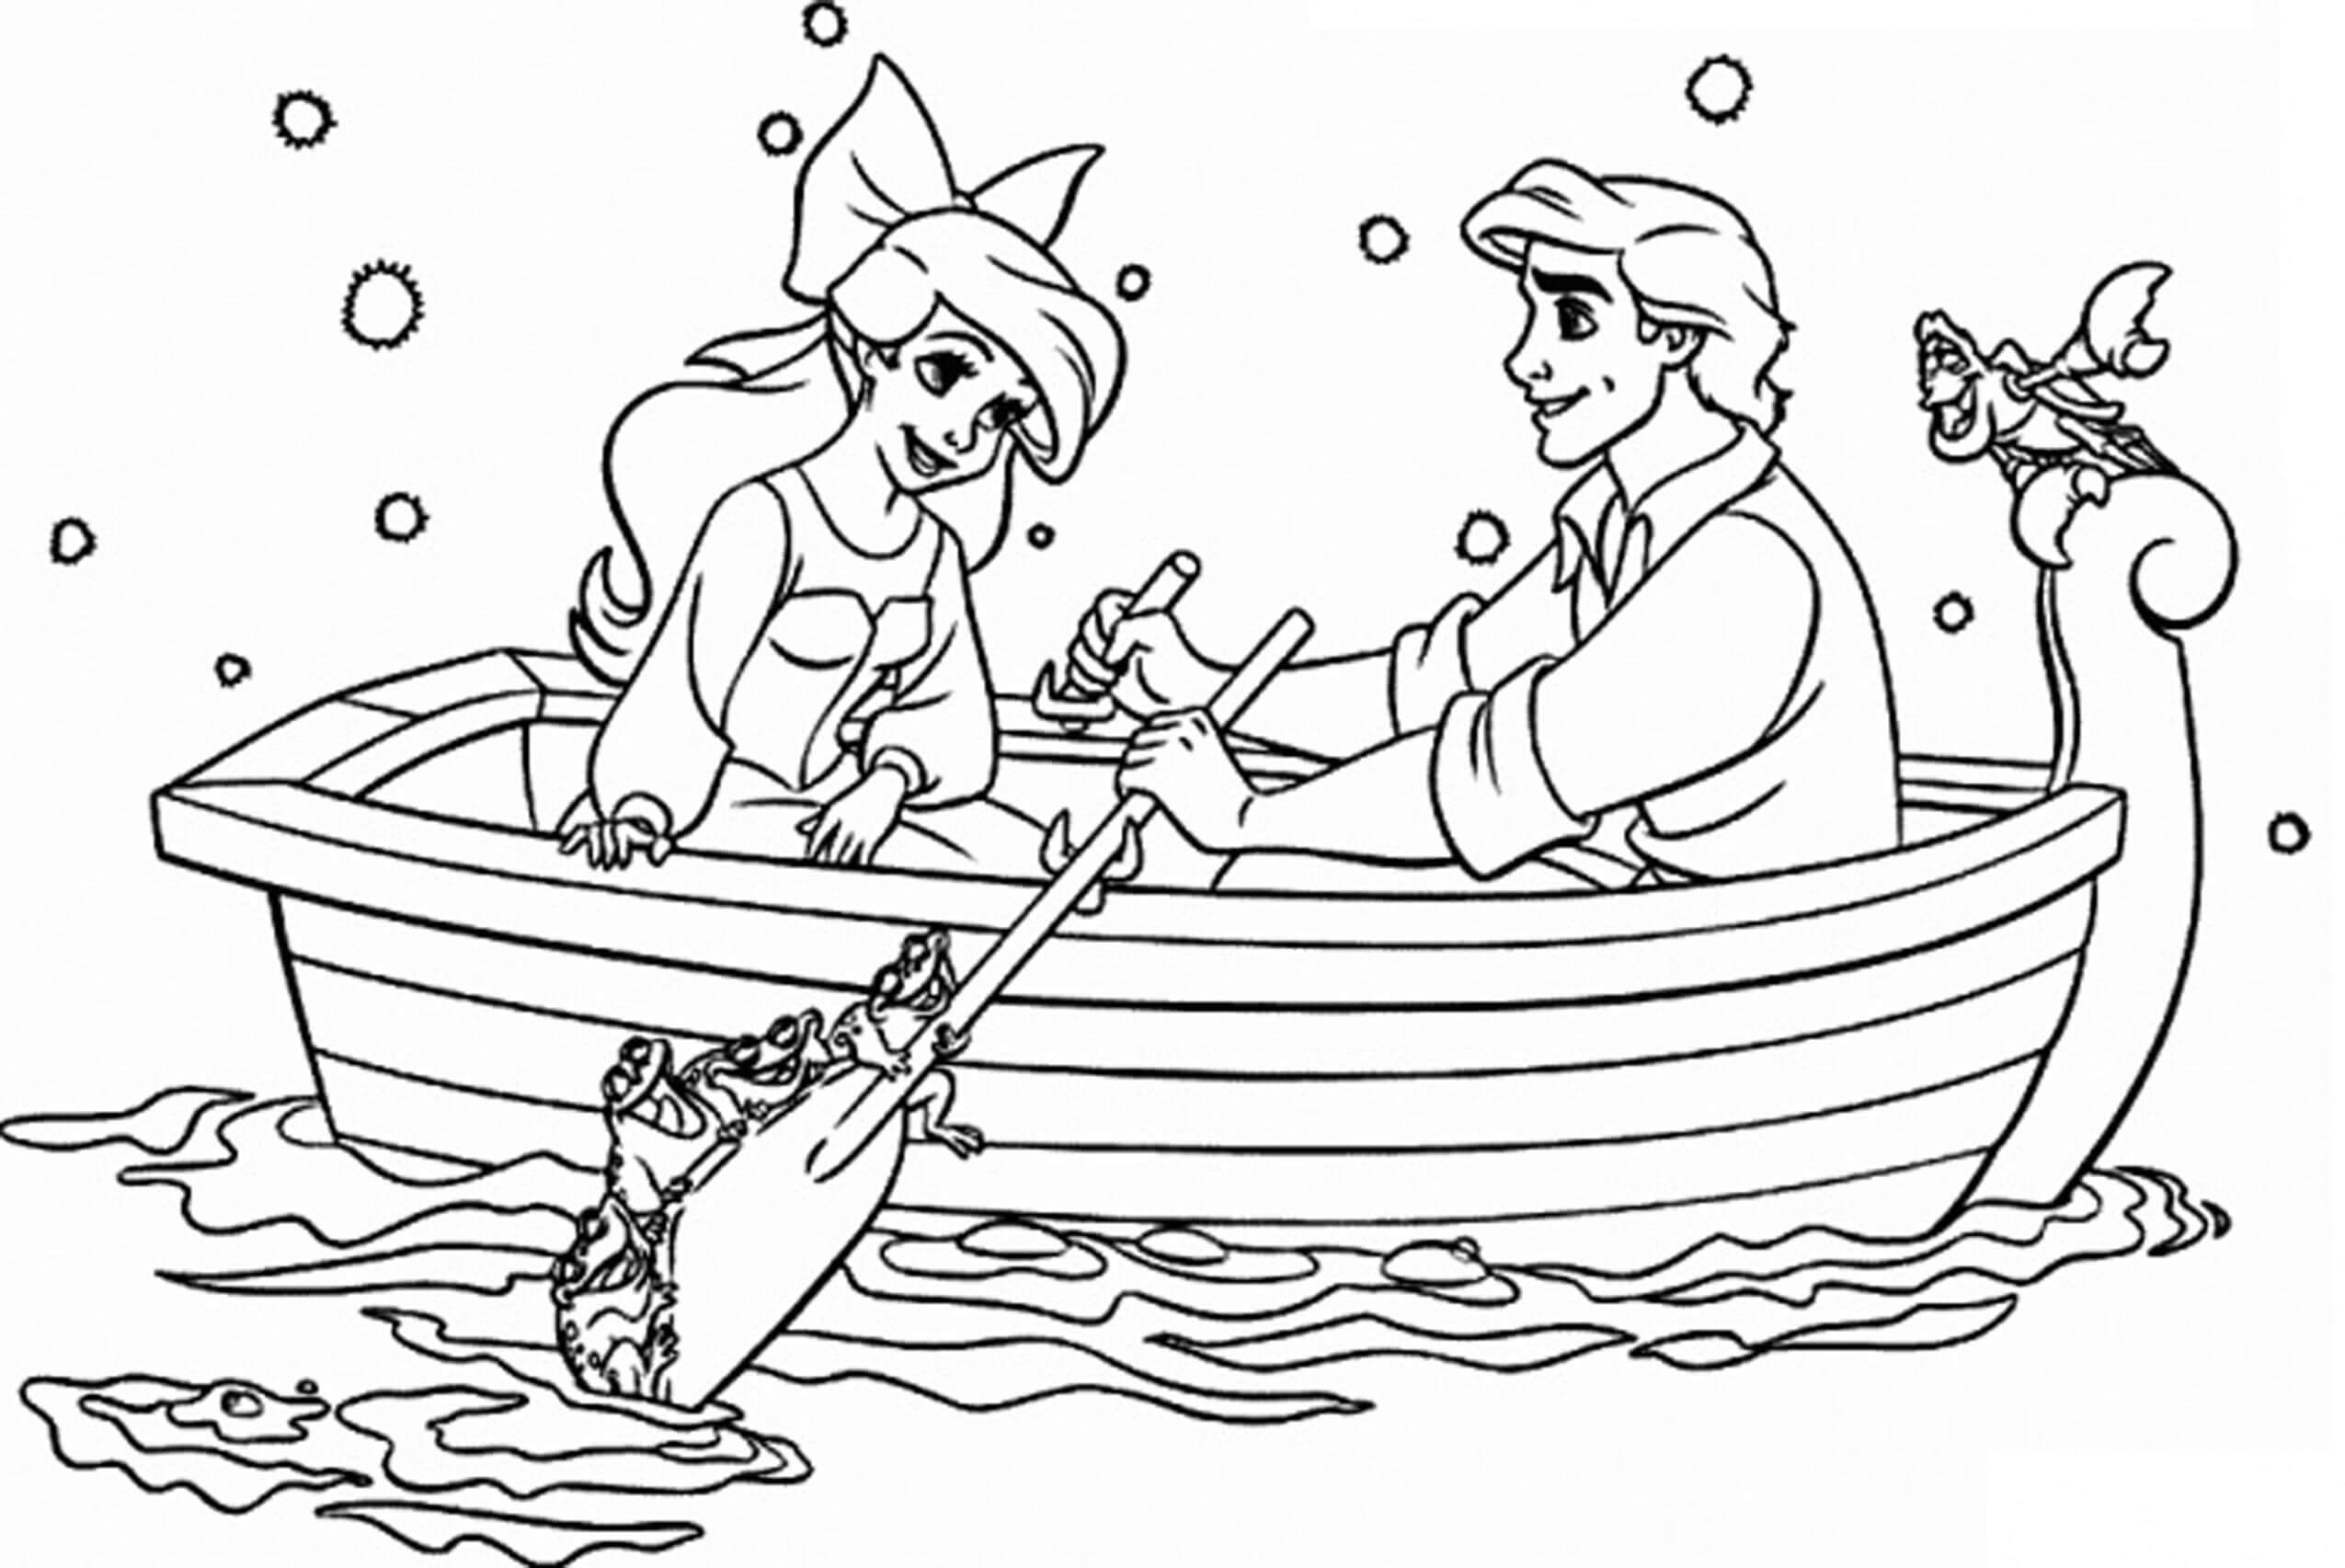 Free disney coloring pages to print out - Disney Christmas Coloring Sheets Printable Free Disney Coloring